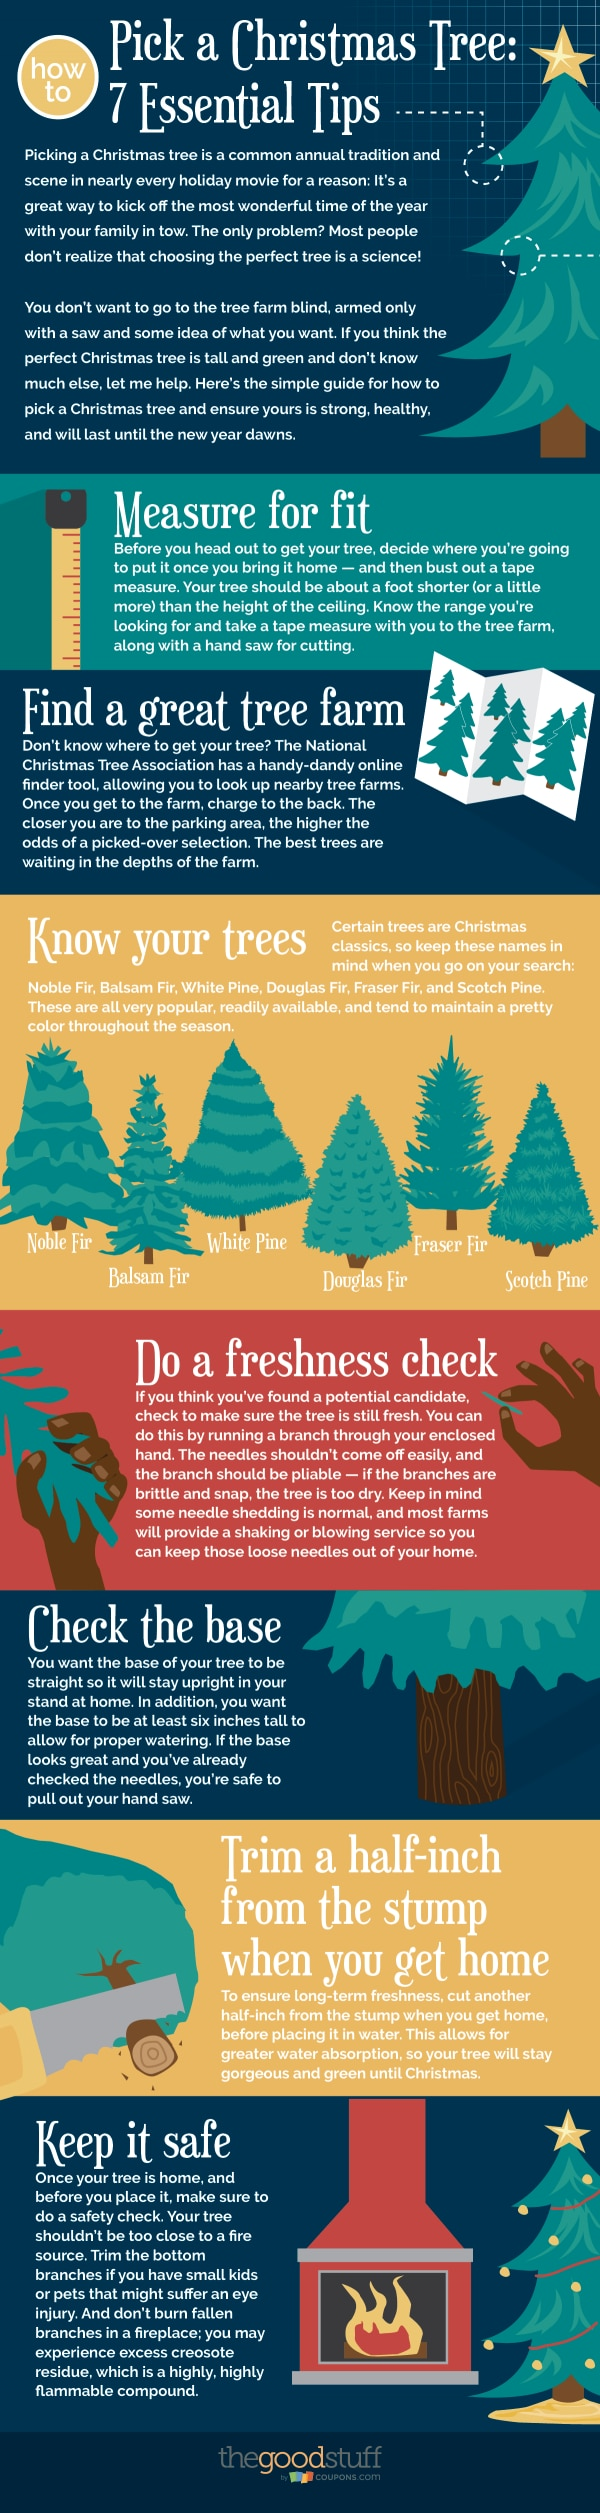 How to Pick a Christmas Tree: 7 Essential Tips | thegoodstuff